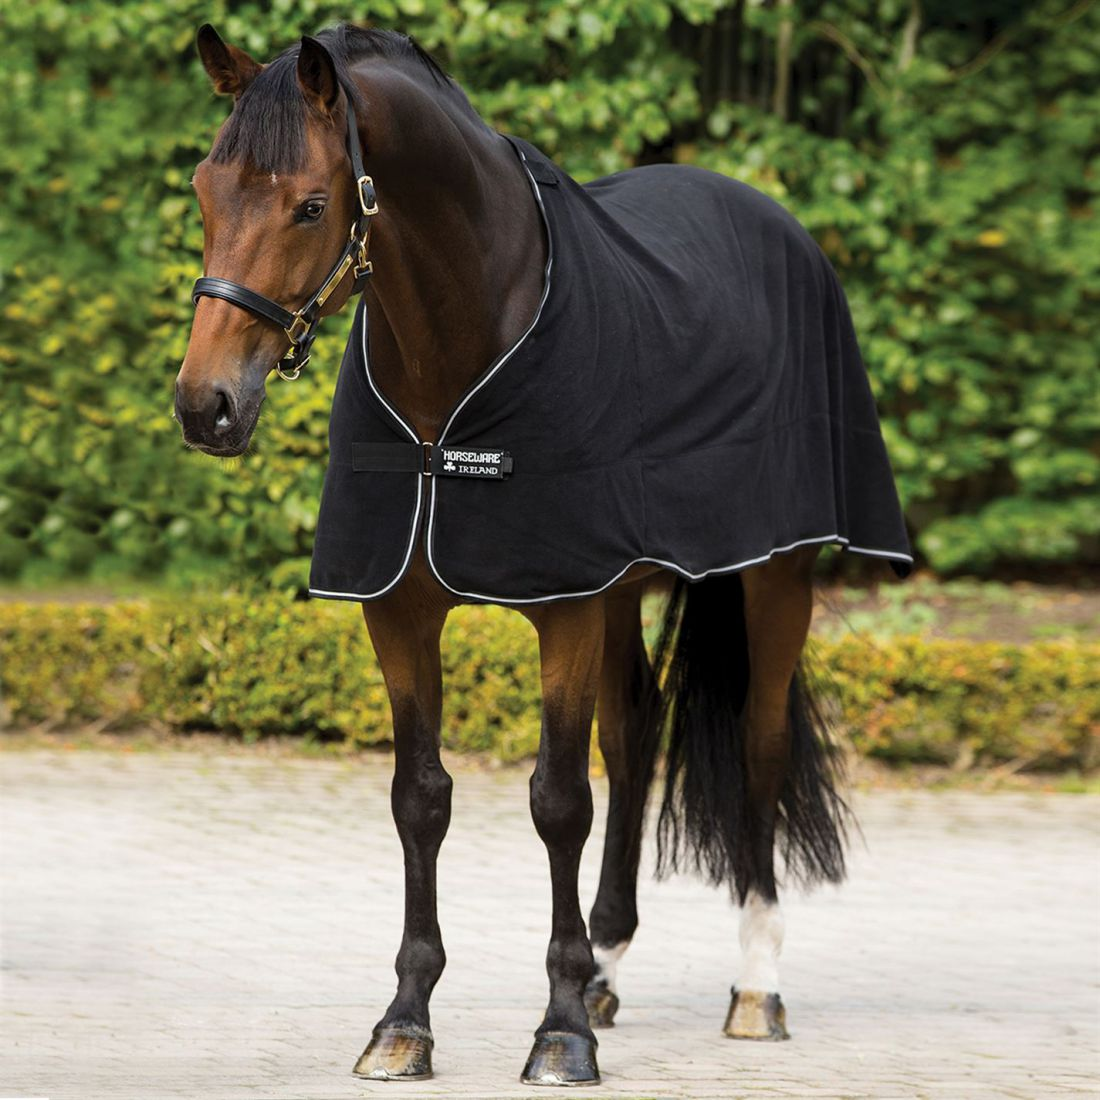 Horseware Liner Rug Extras Ventilated Insulated Warm   export outlet